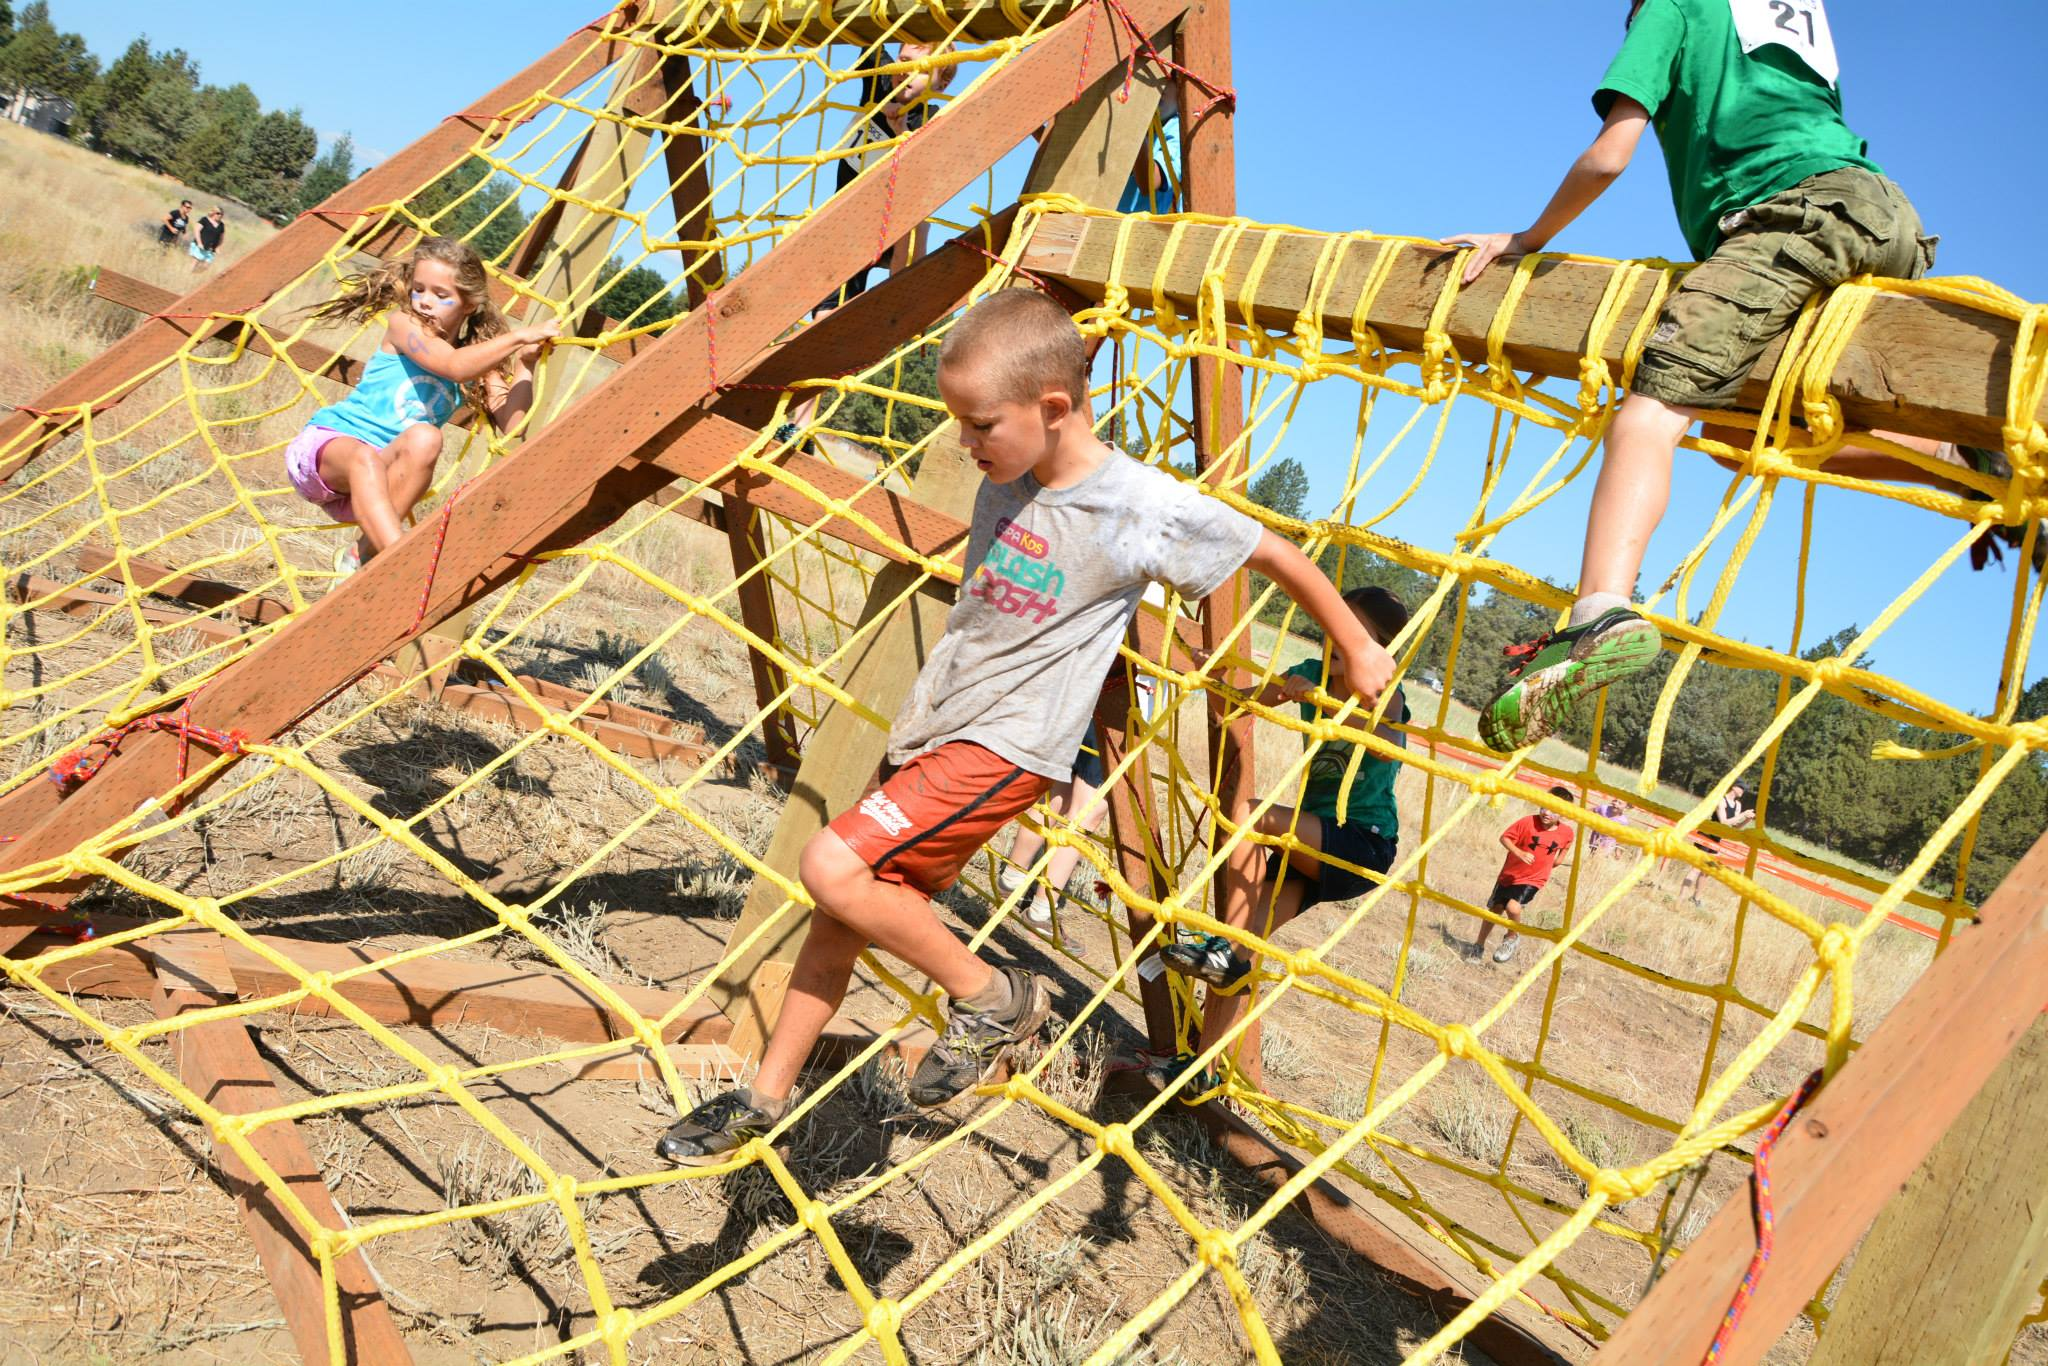 Cargo Climbers Subaru Kids Obstacle Challenge